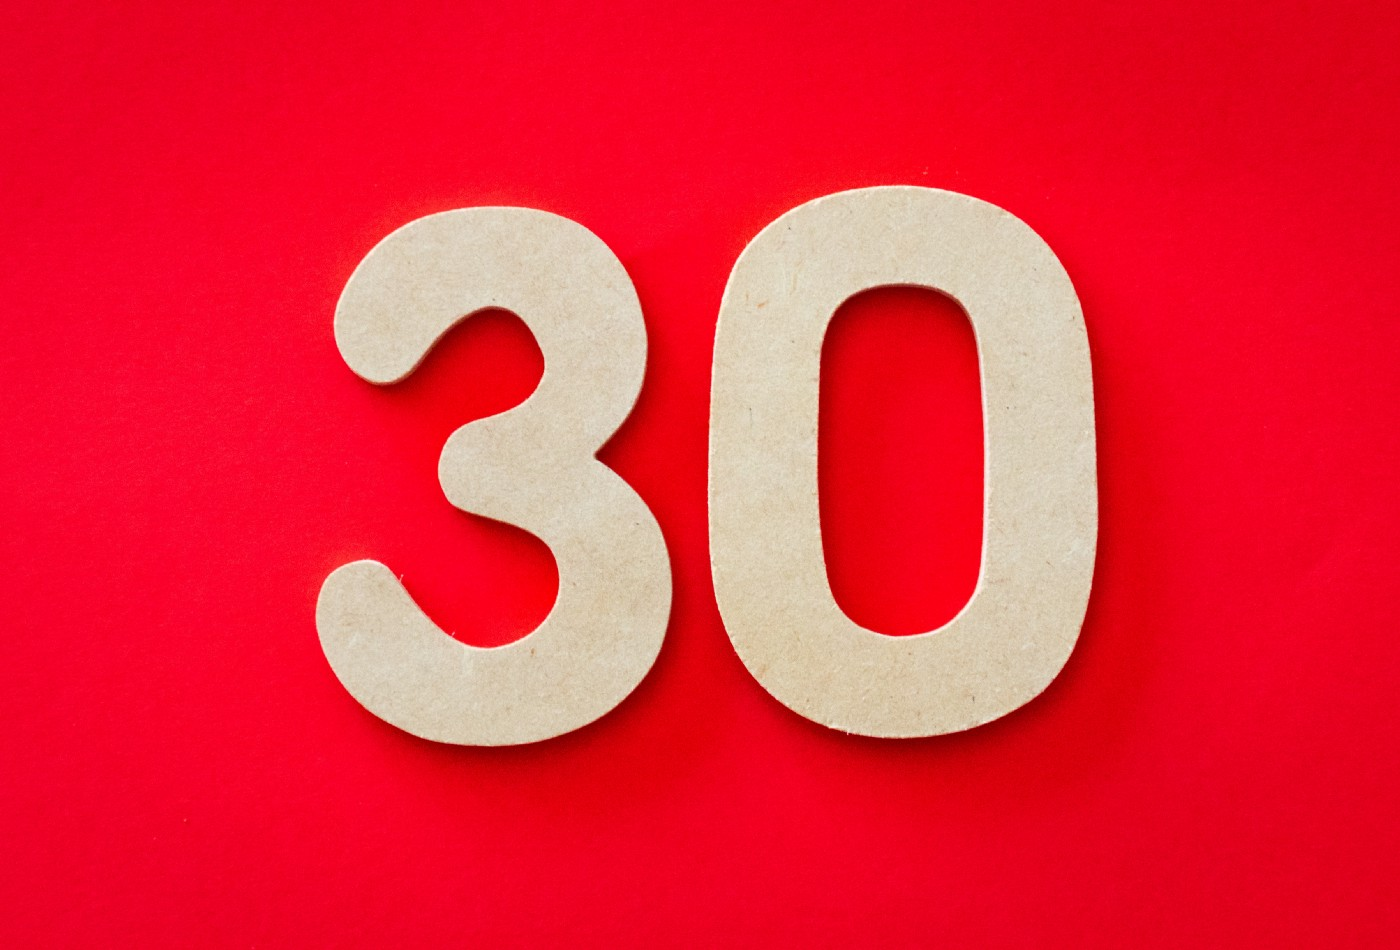 A red background with giant wood block numbers: 30.